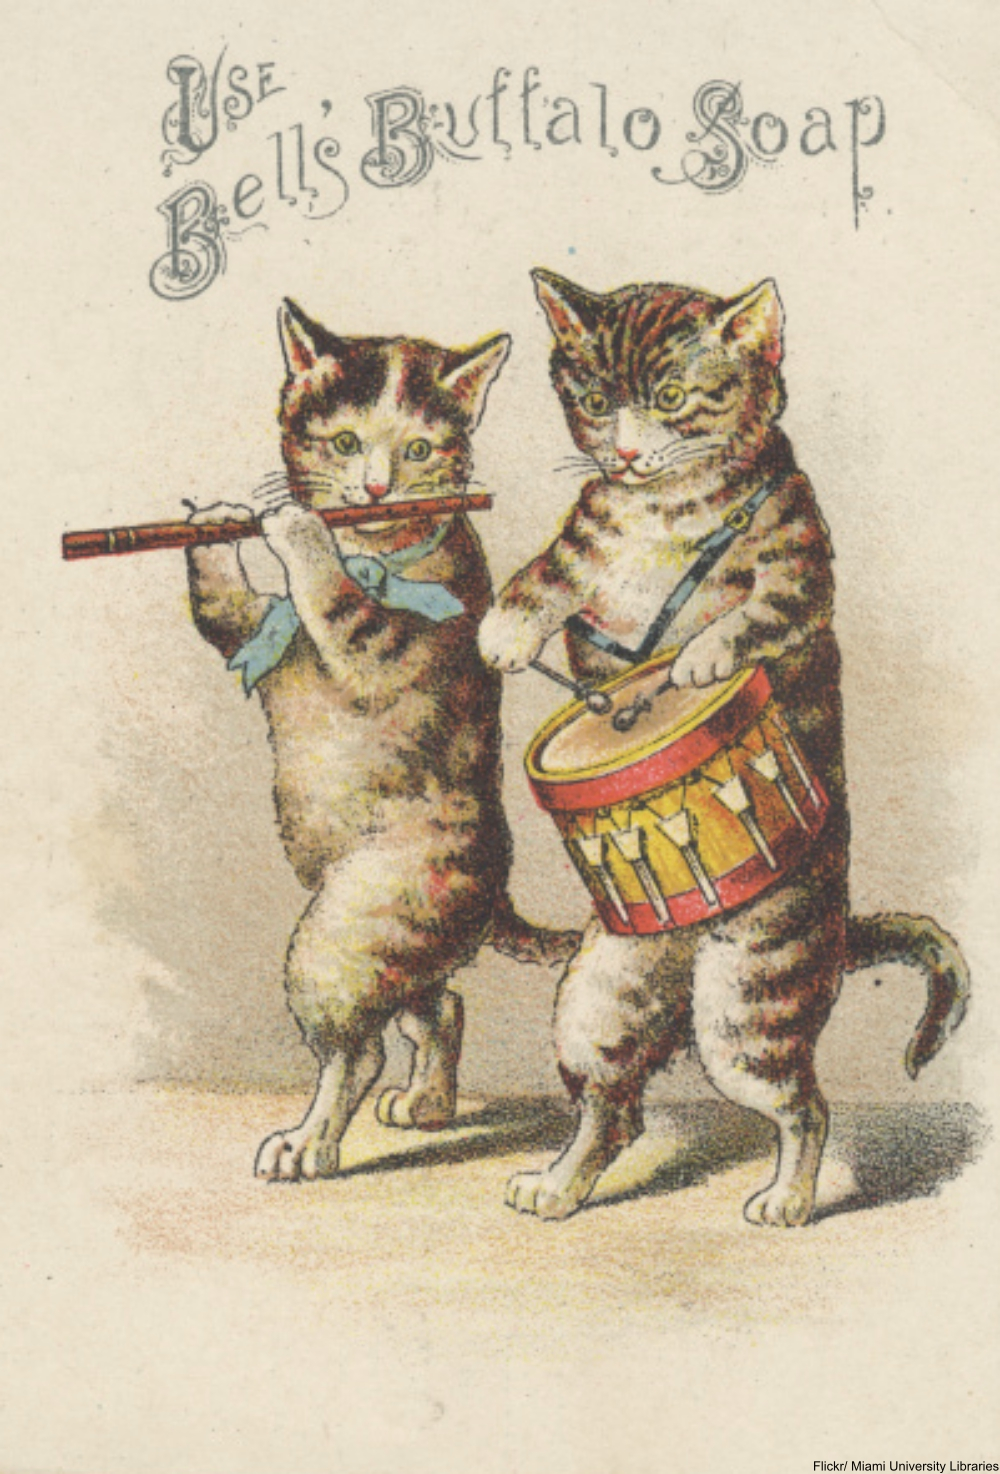 What Is the Deal with Anthropomorphic Animal Advertisements from the 19th Century?